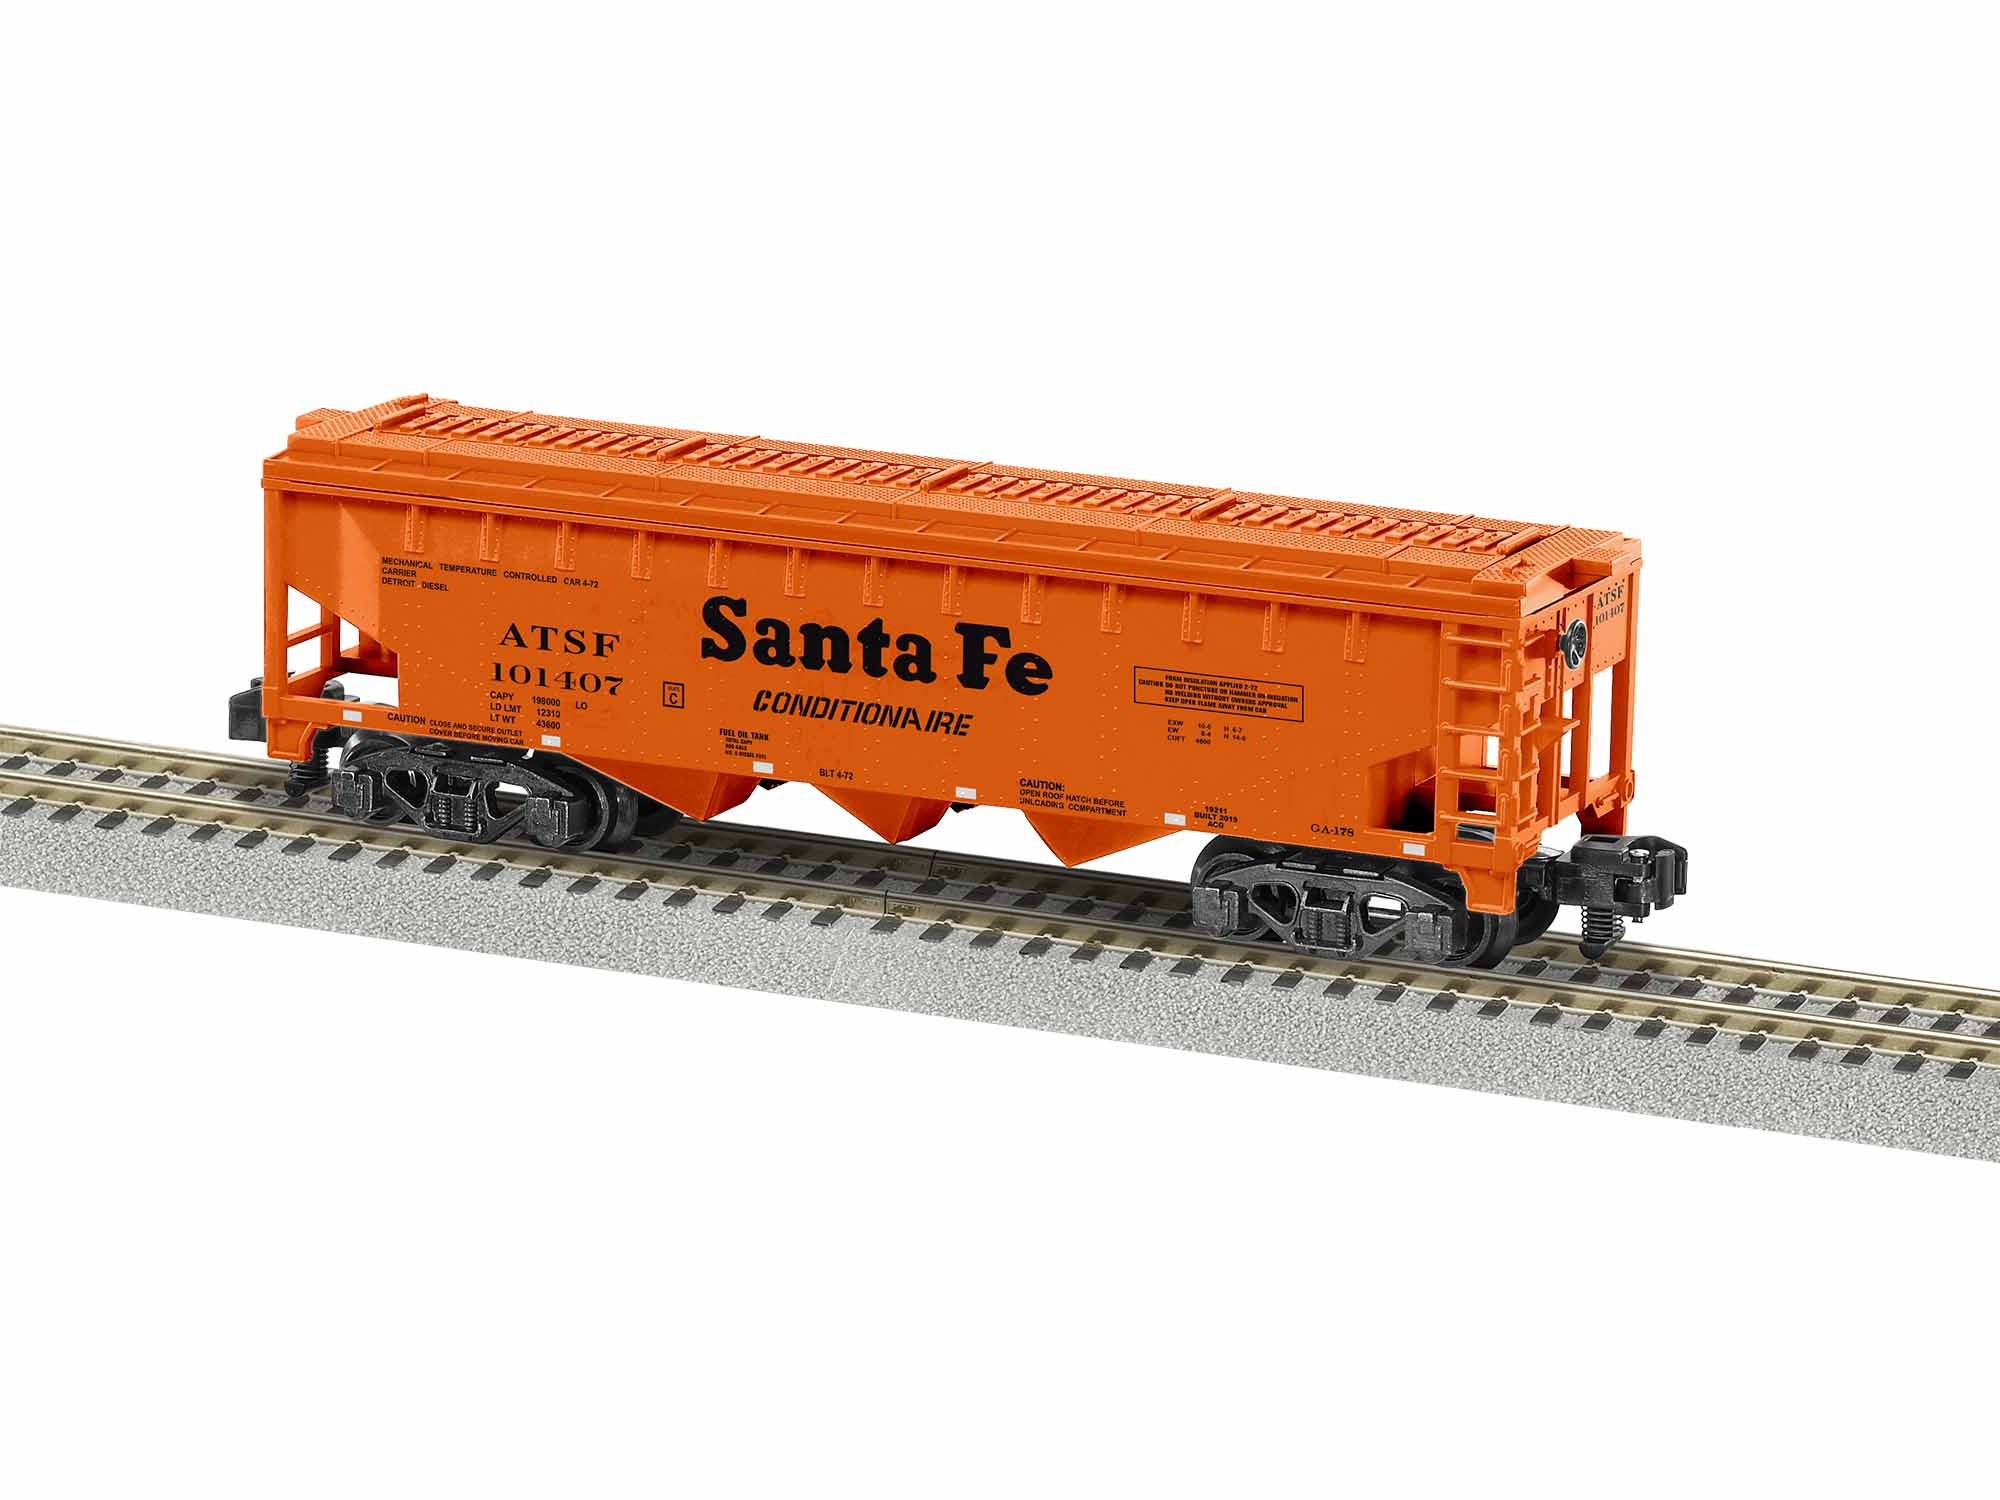 LNL1919211 Lionel S AF 3 Bay Covered Hopper, SF #101407 434-1919211